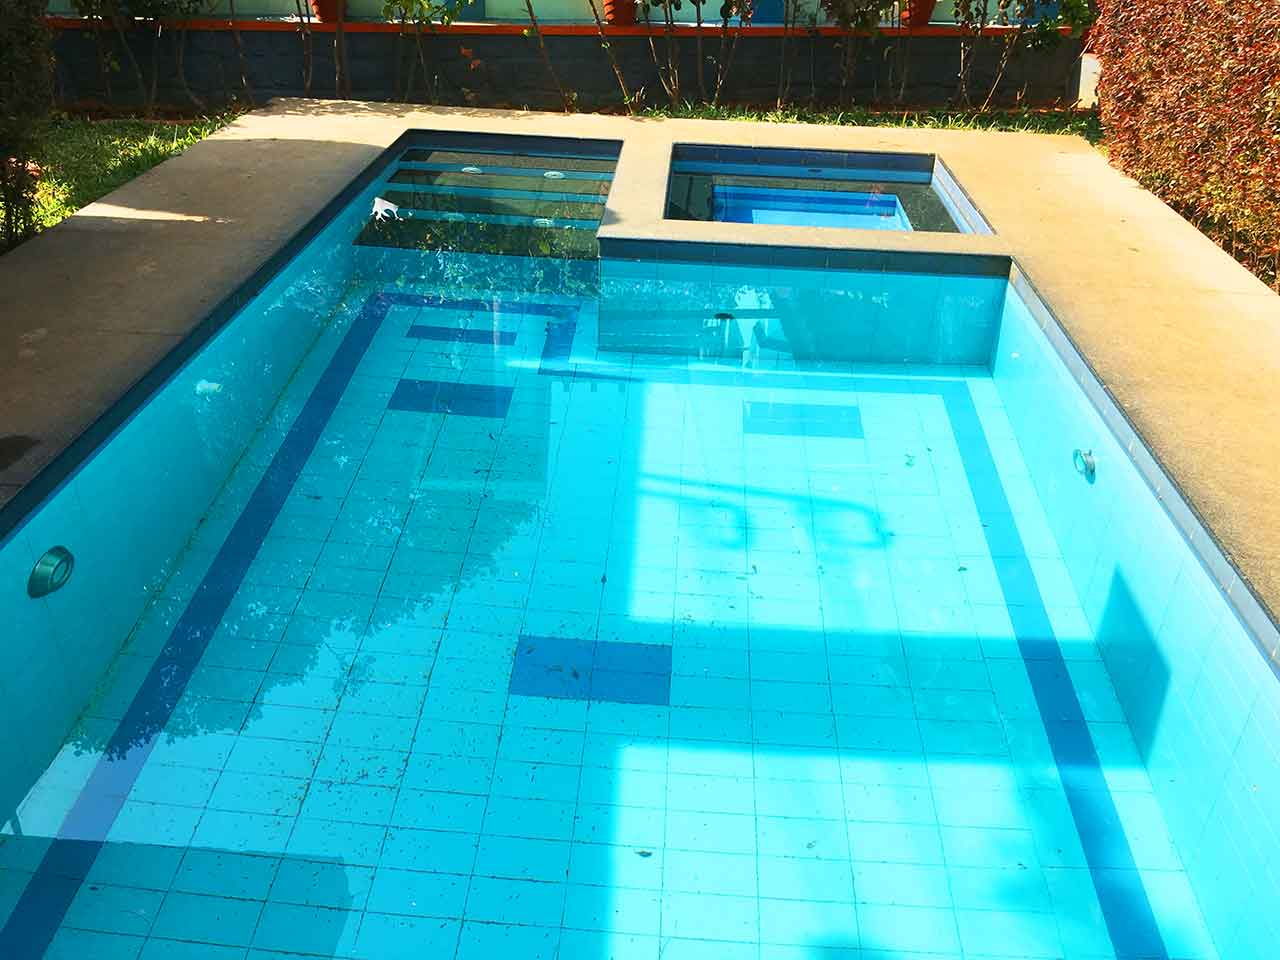 independent villa with swimming pool in yelagiri hills